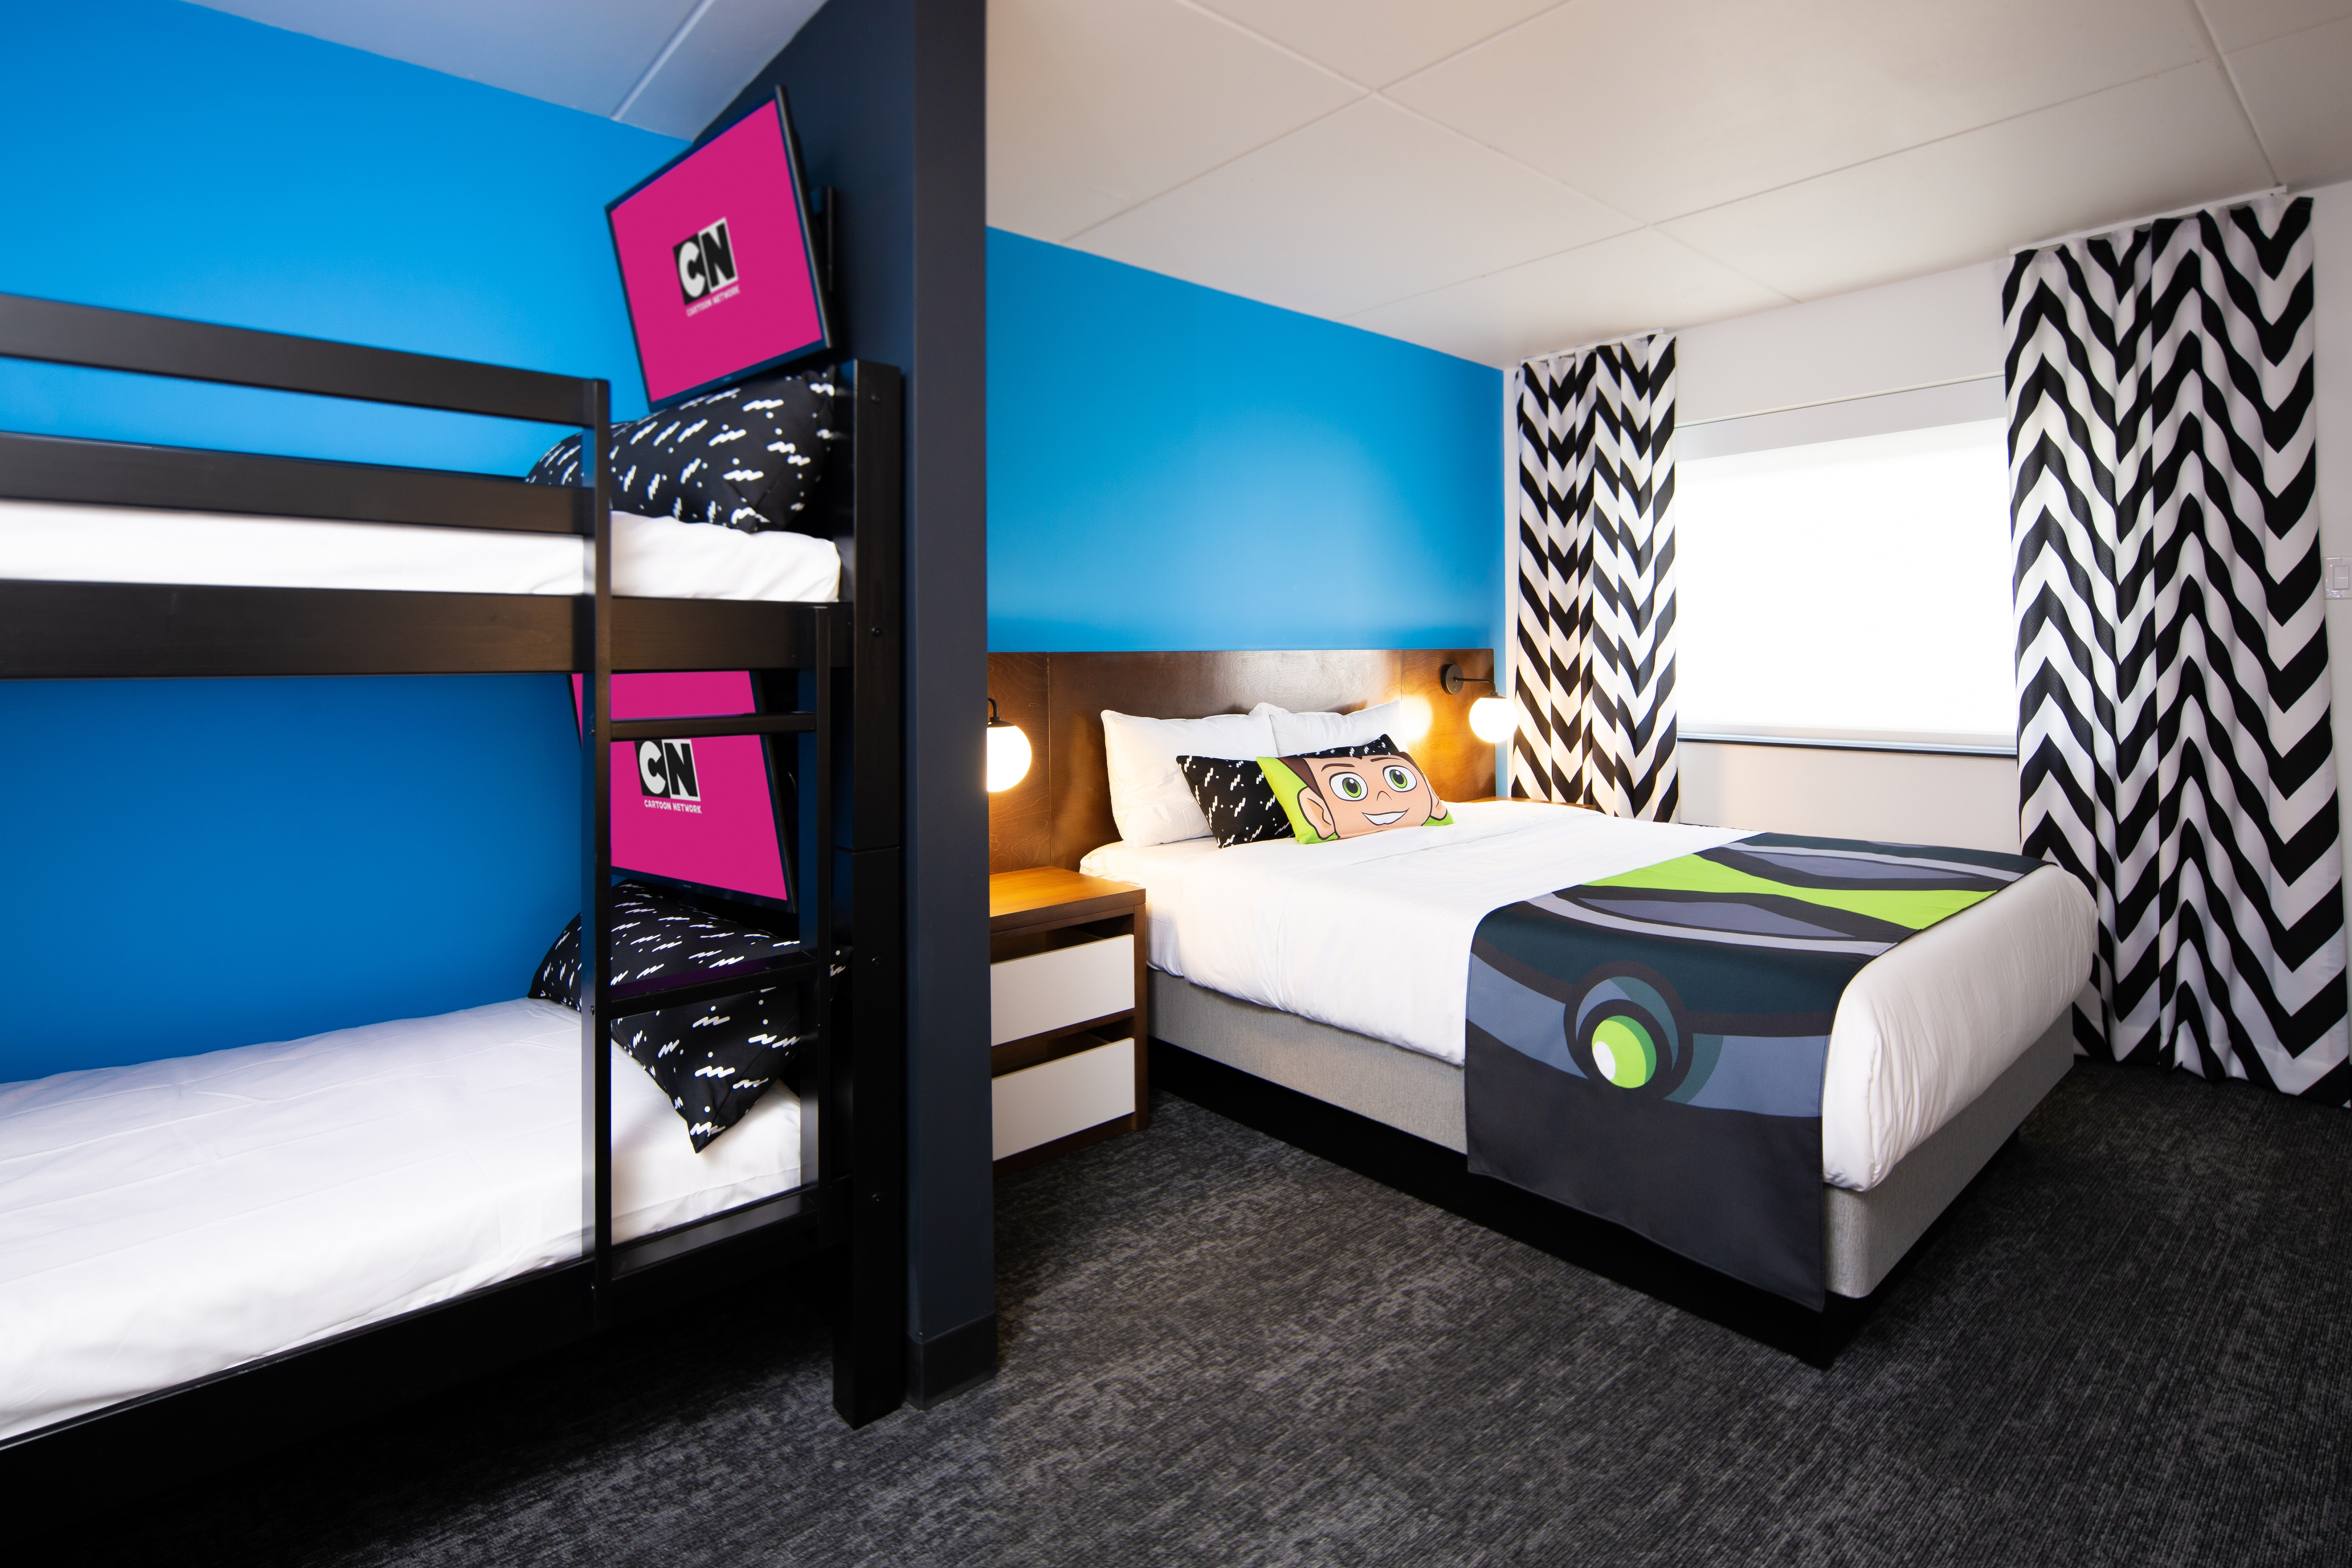 Ben 10 themed room and bedspread with bunk beds